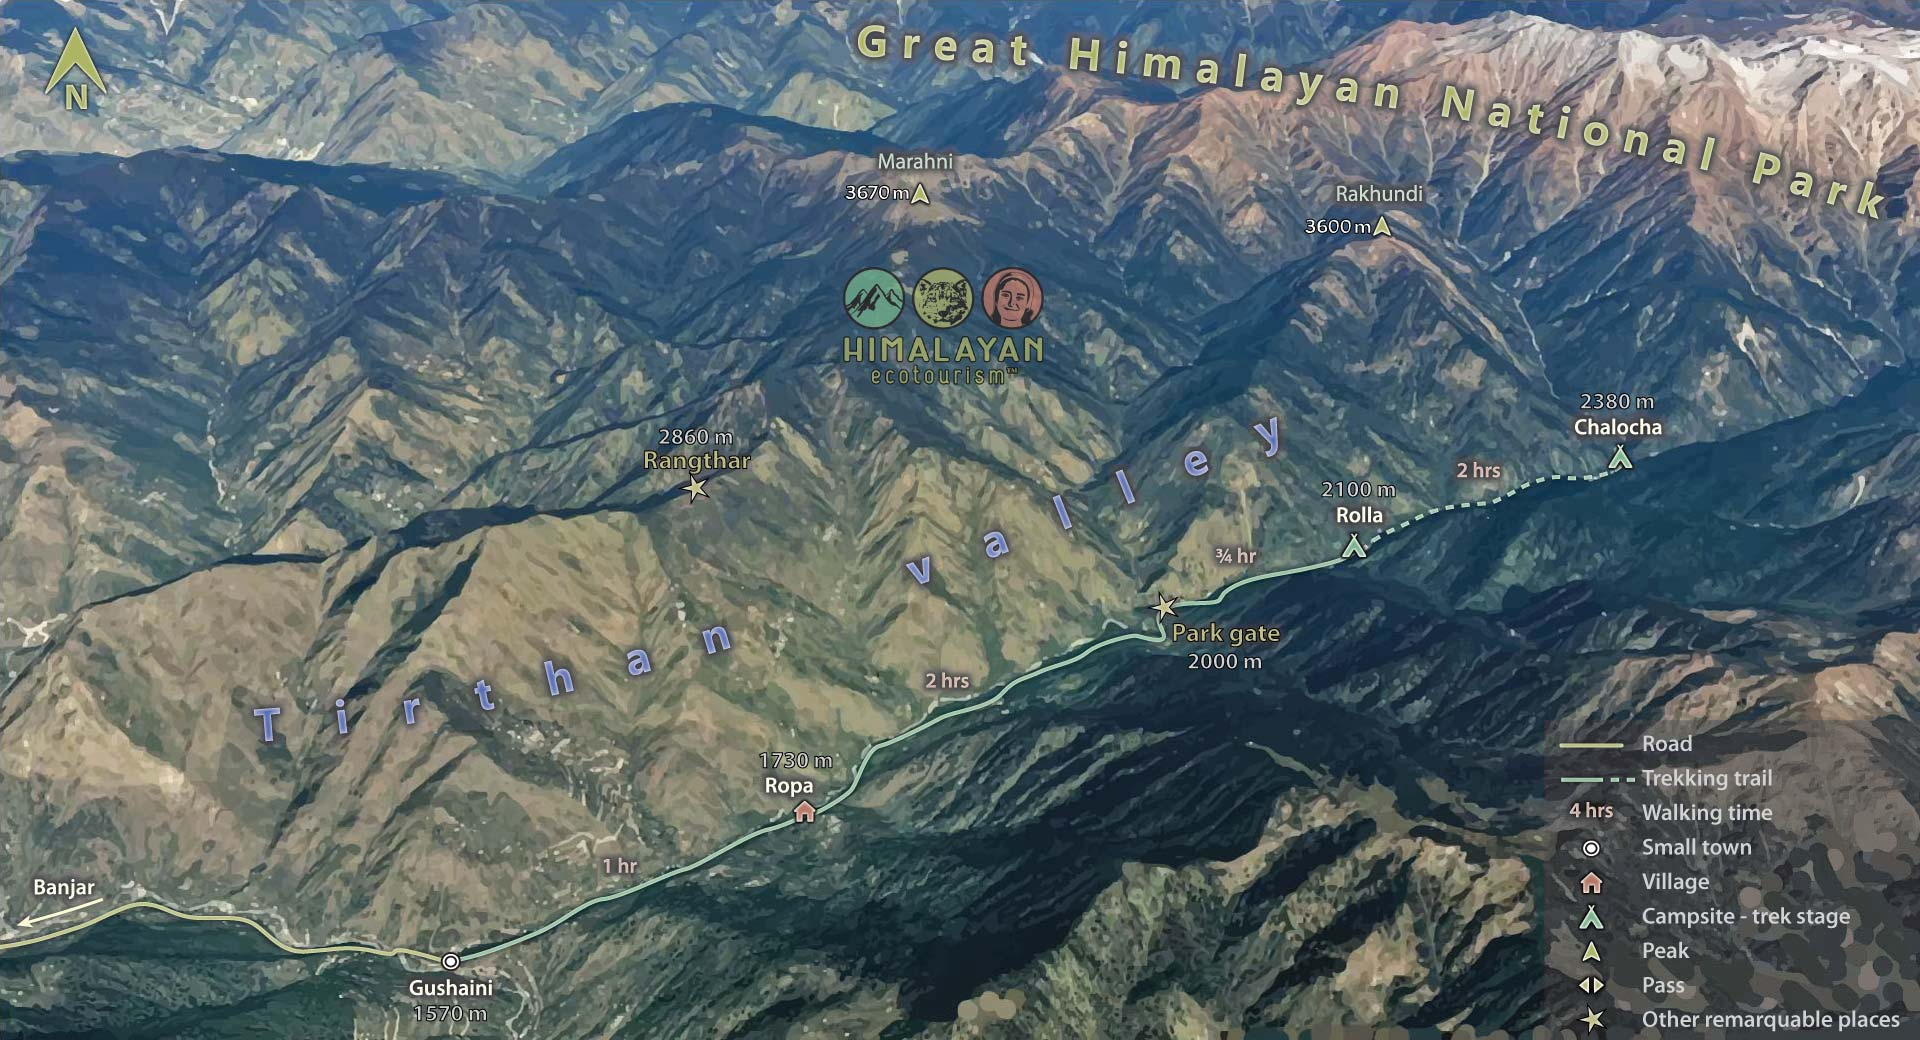 Rolla trek map in the Great Himalayan National Park GHNP